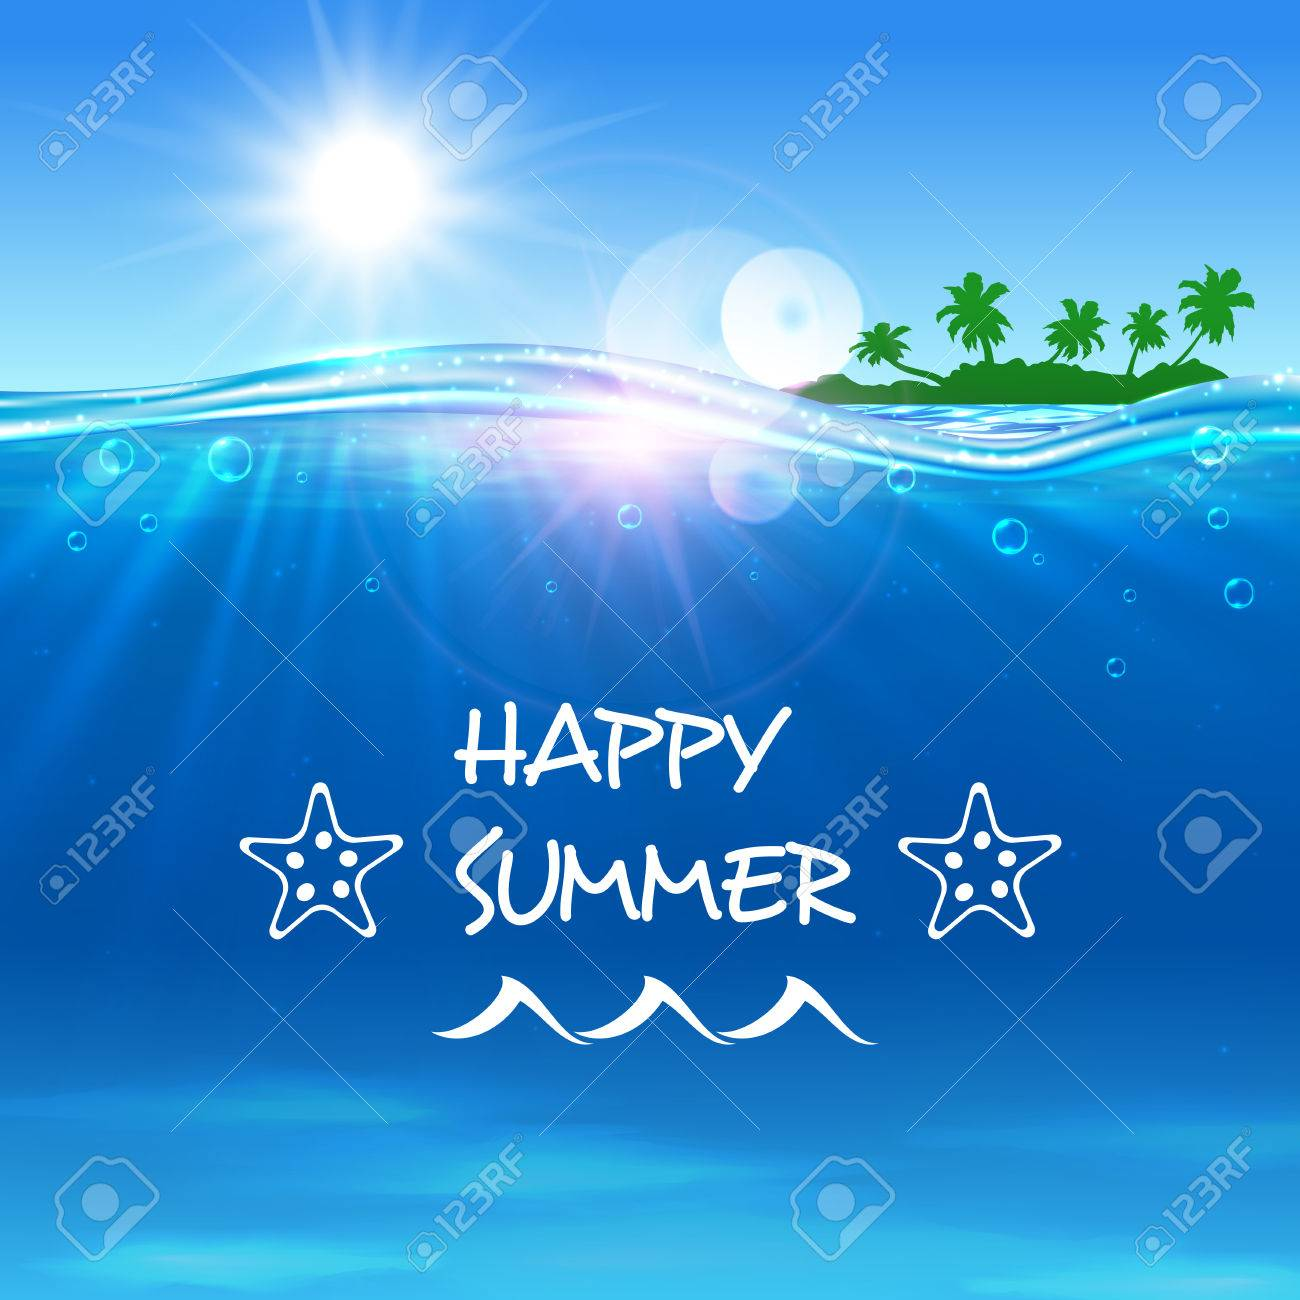 Happy Summer Poster Summer Journey Travel Background With Ocean